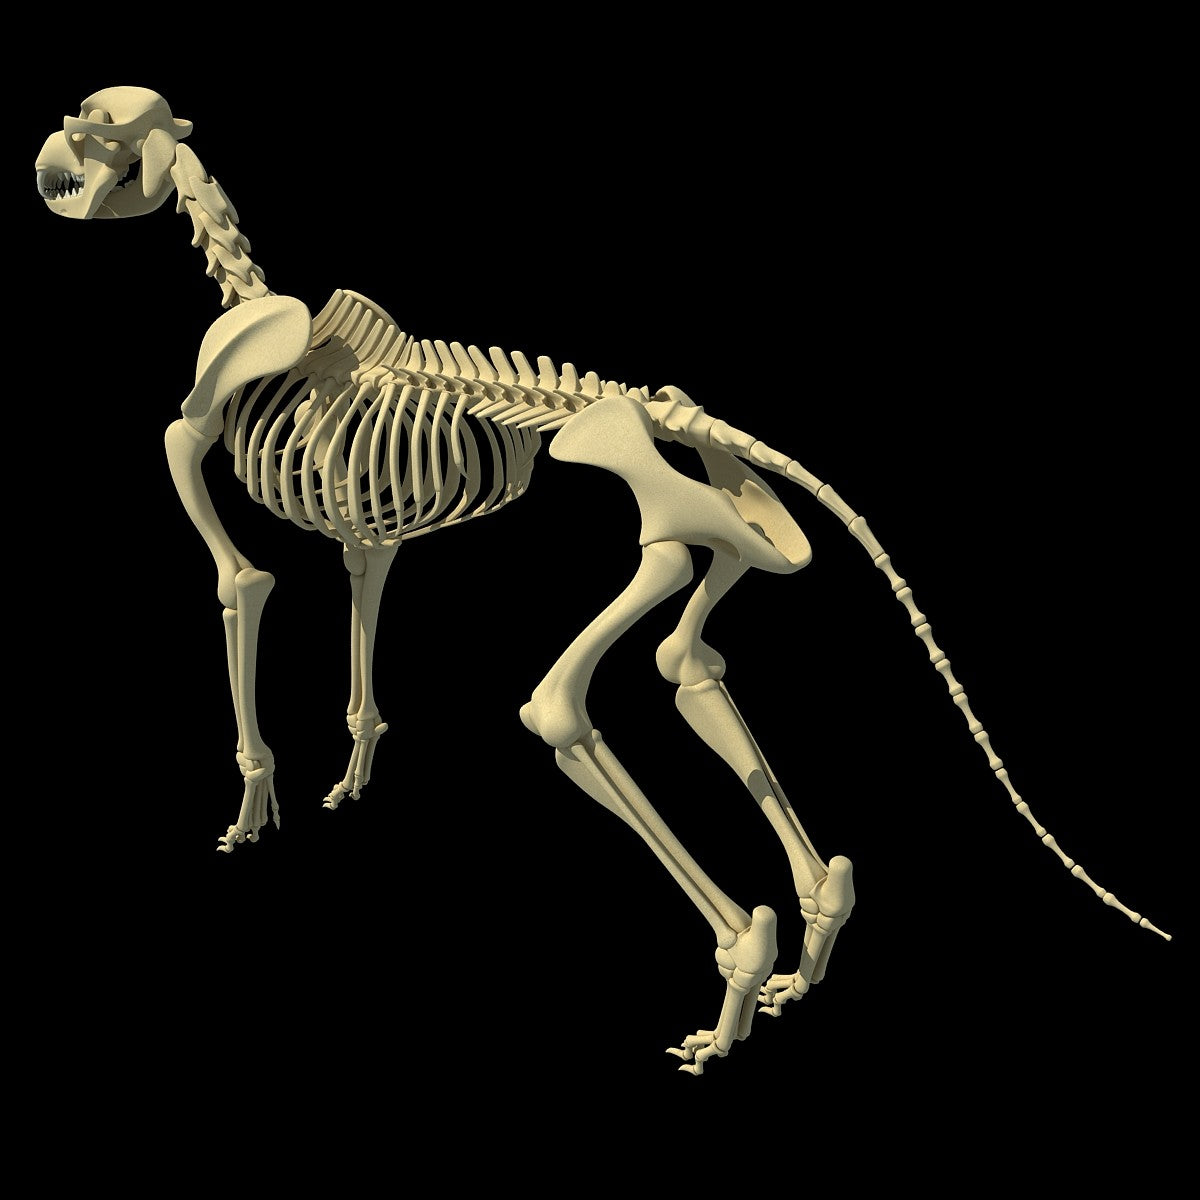 Dog Skeleton 3D Model